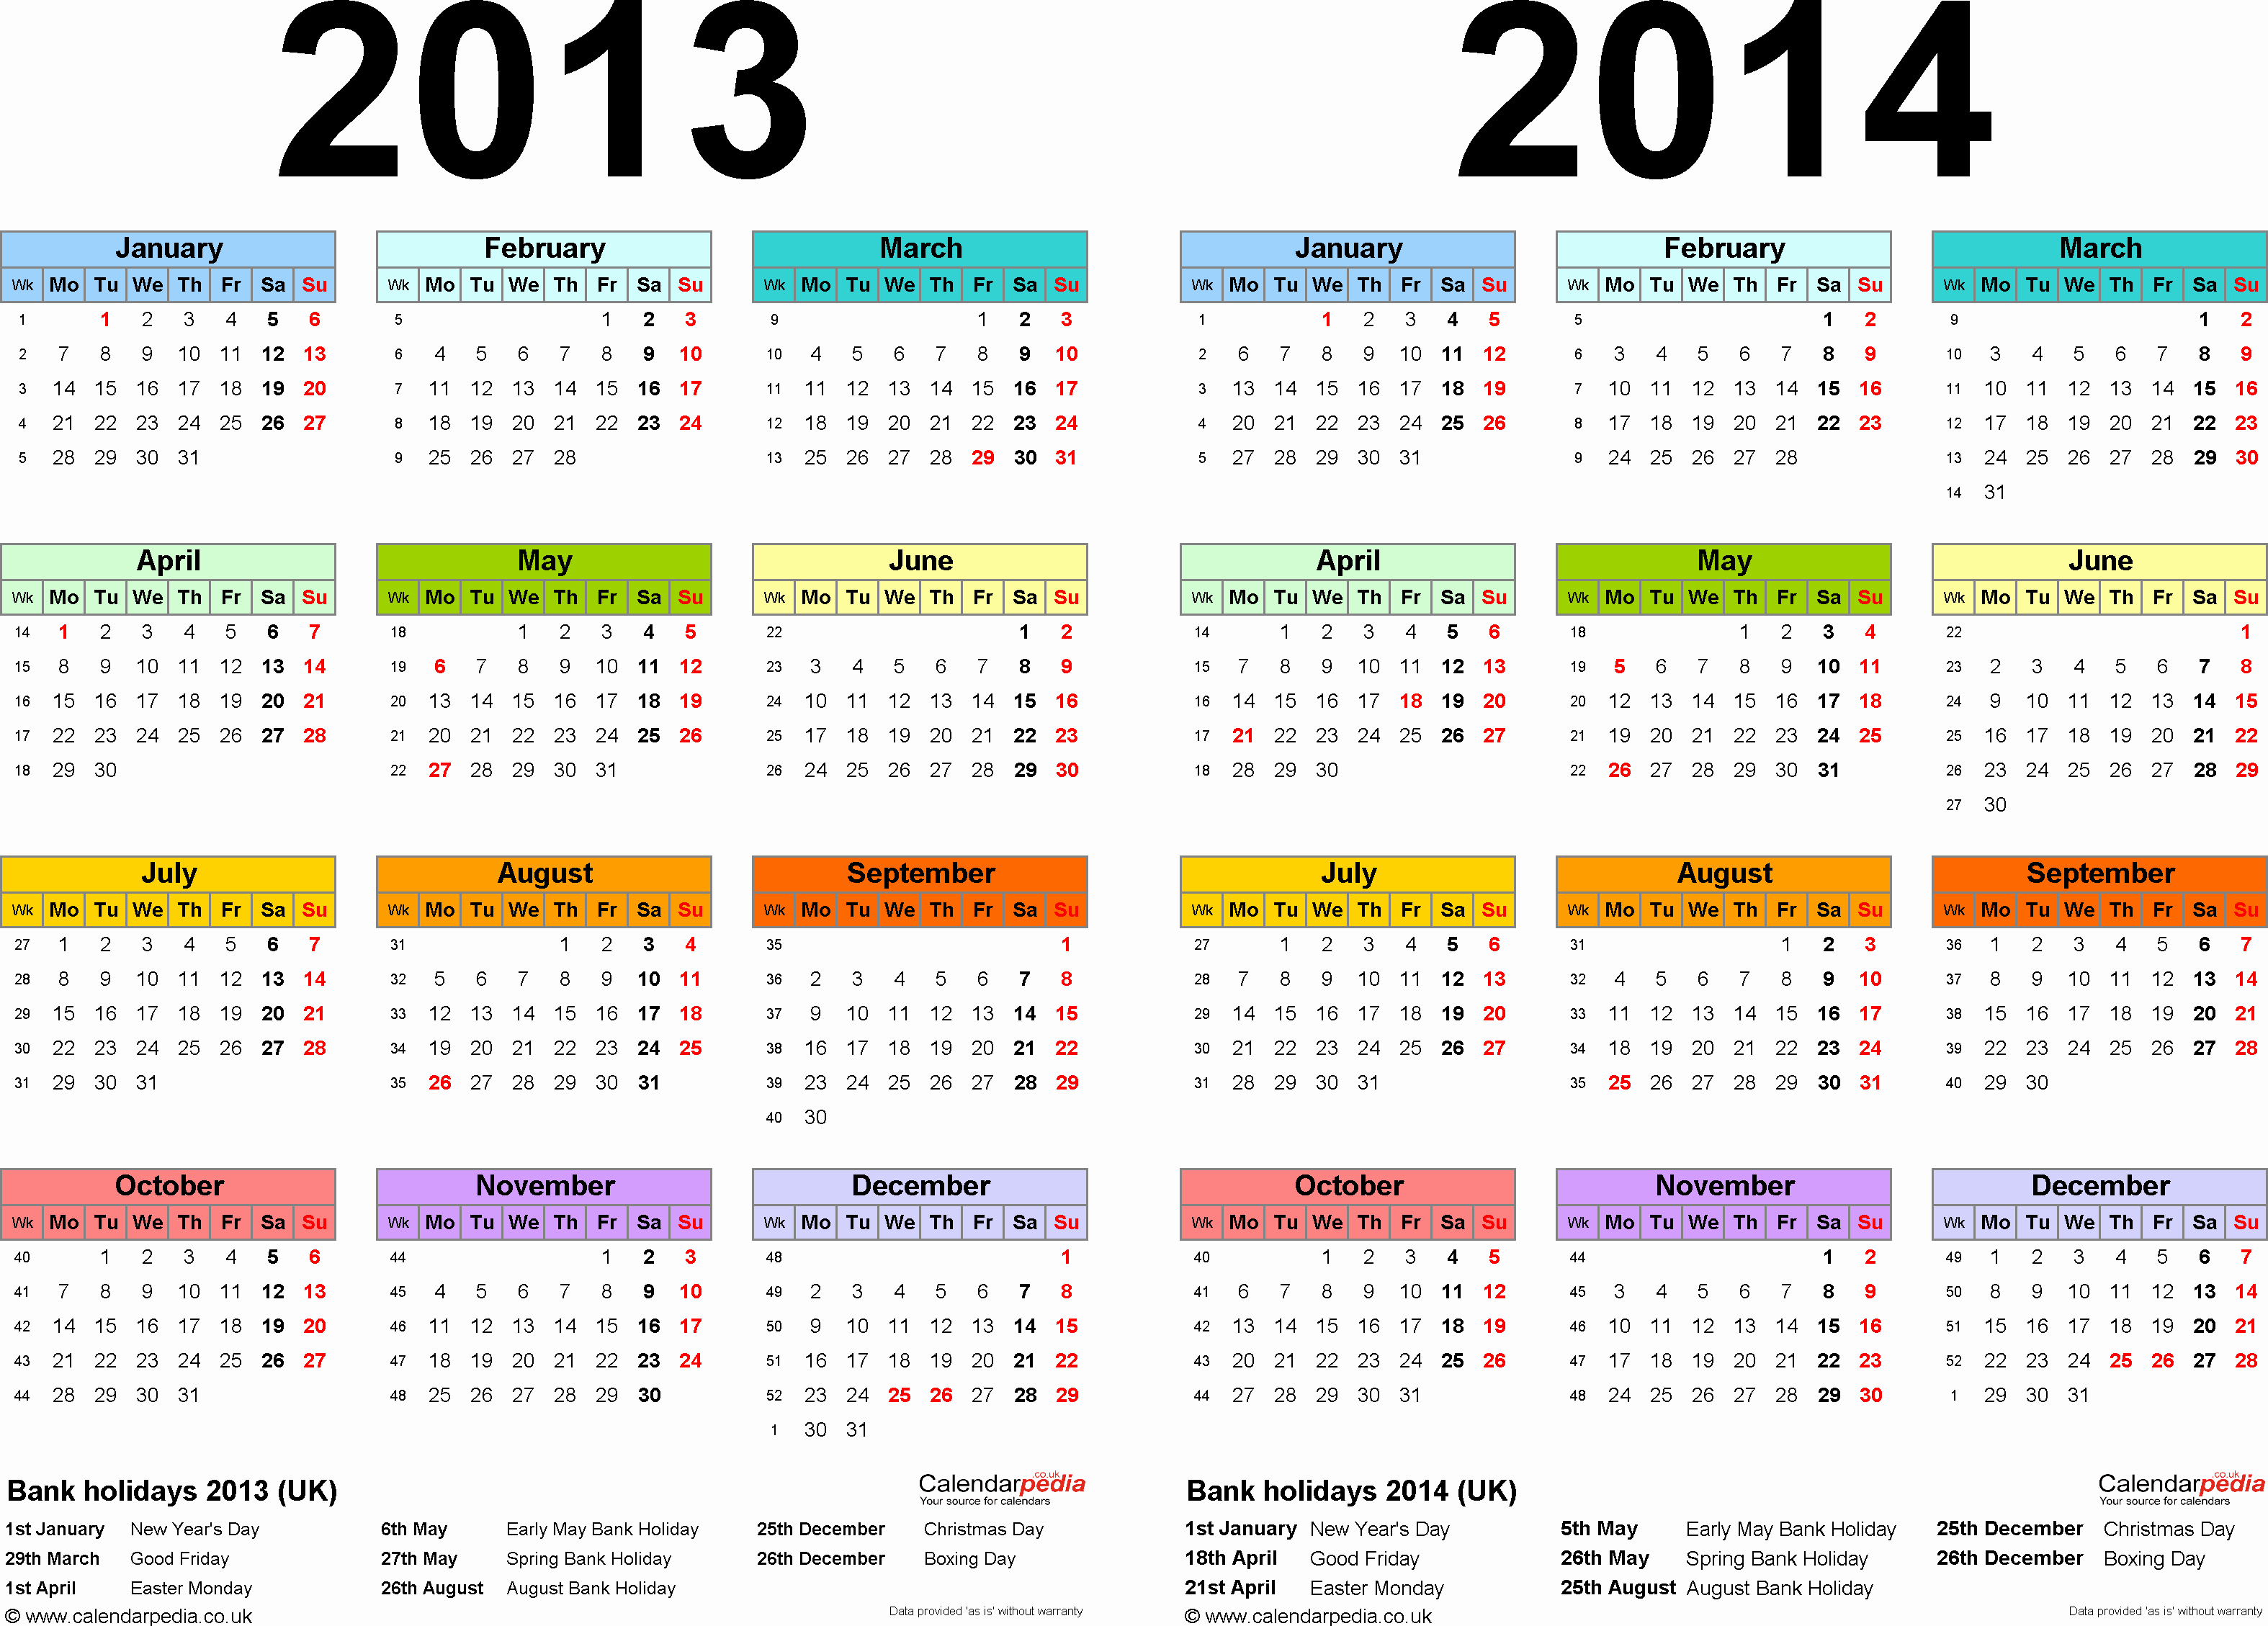 2013 Calendar Printable One Page New Two Year Calendars for 2013 & 2014 Uk for Excel